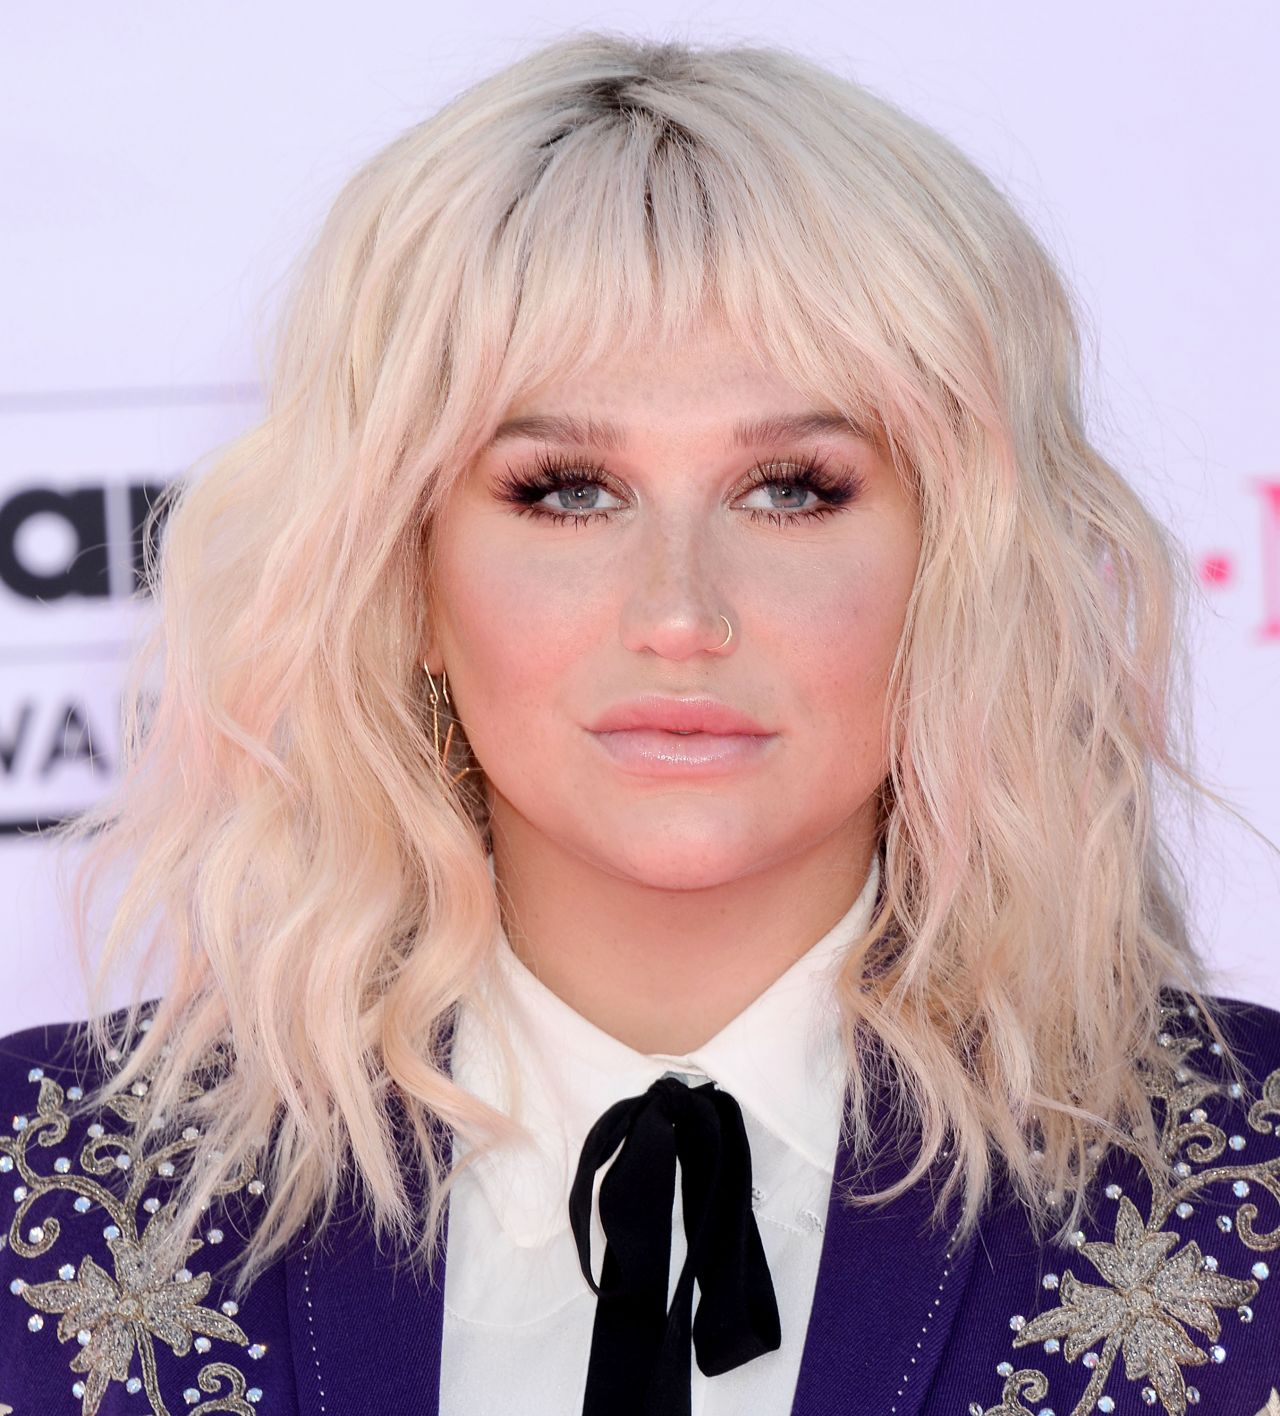 Kesha 2016 Billboard Music Awards In Las Vegas Nv